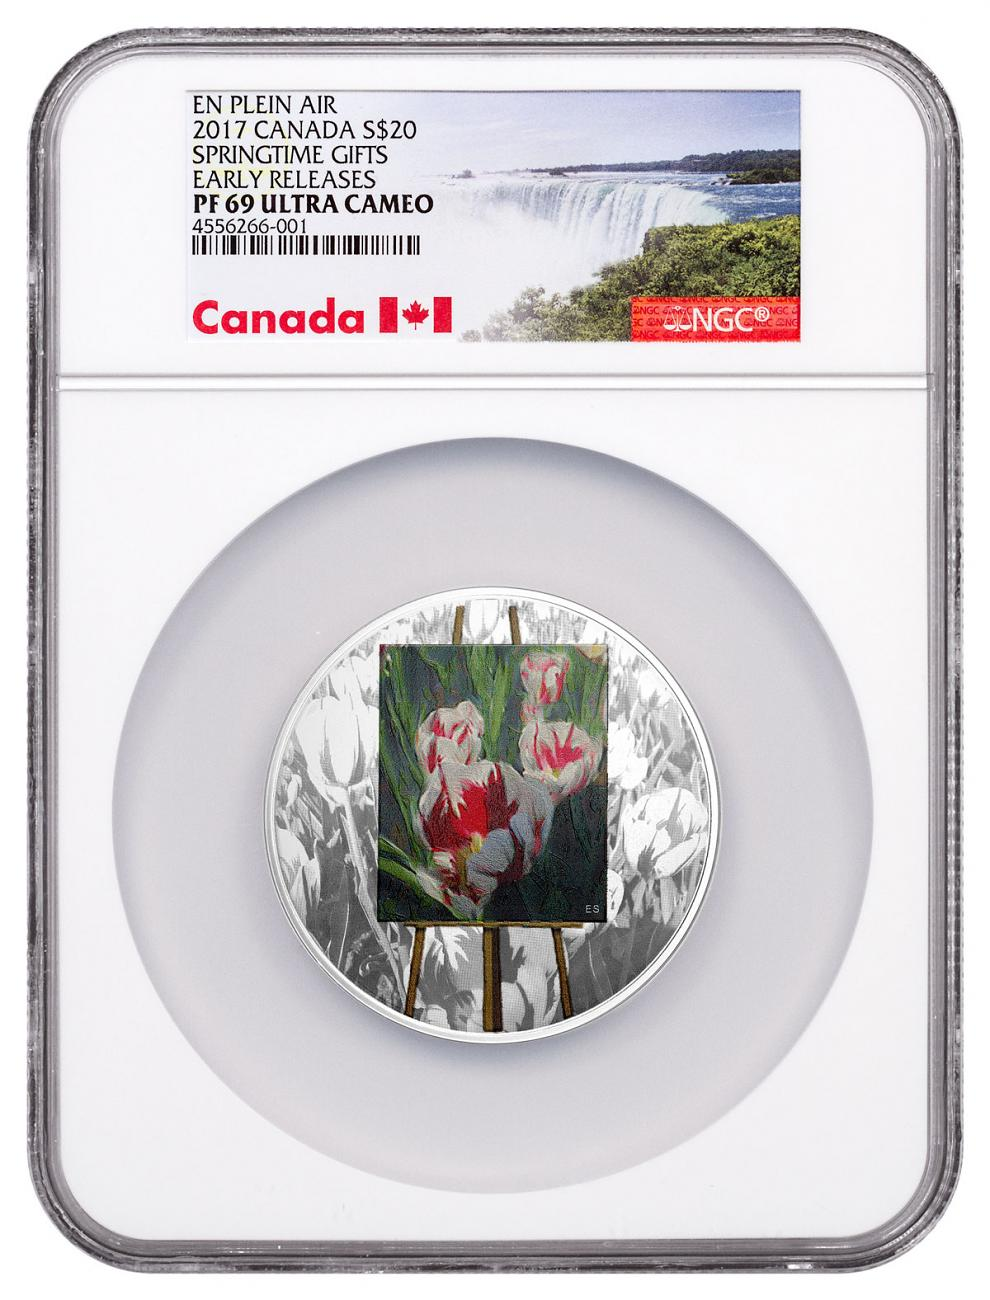 2017 Canada En Plein Air - Springtime Gifts 1 oz Silver Colorized Proof $20 Coin NGC PF69 UC ER Exclusive Canada Label